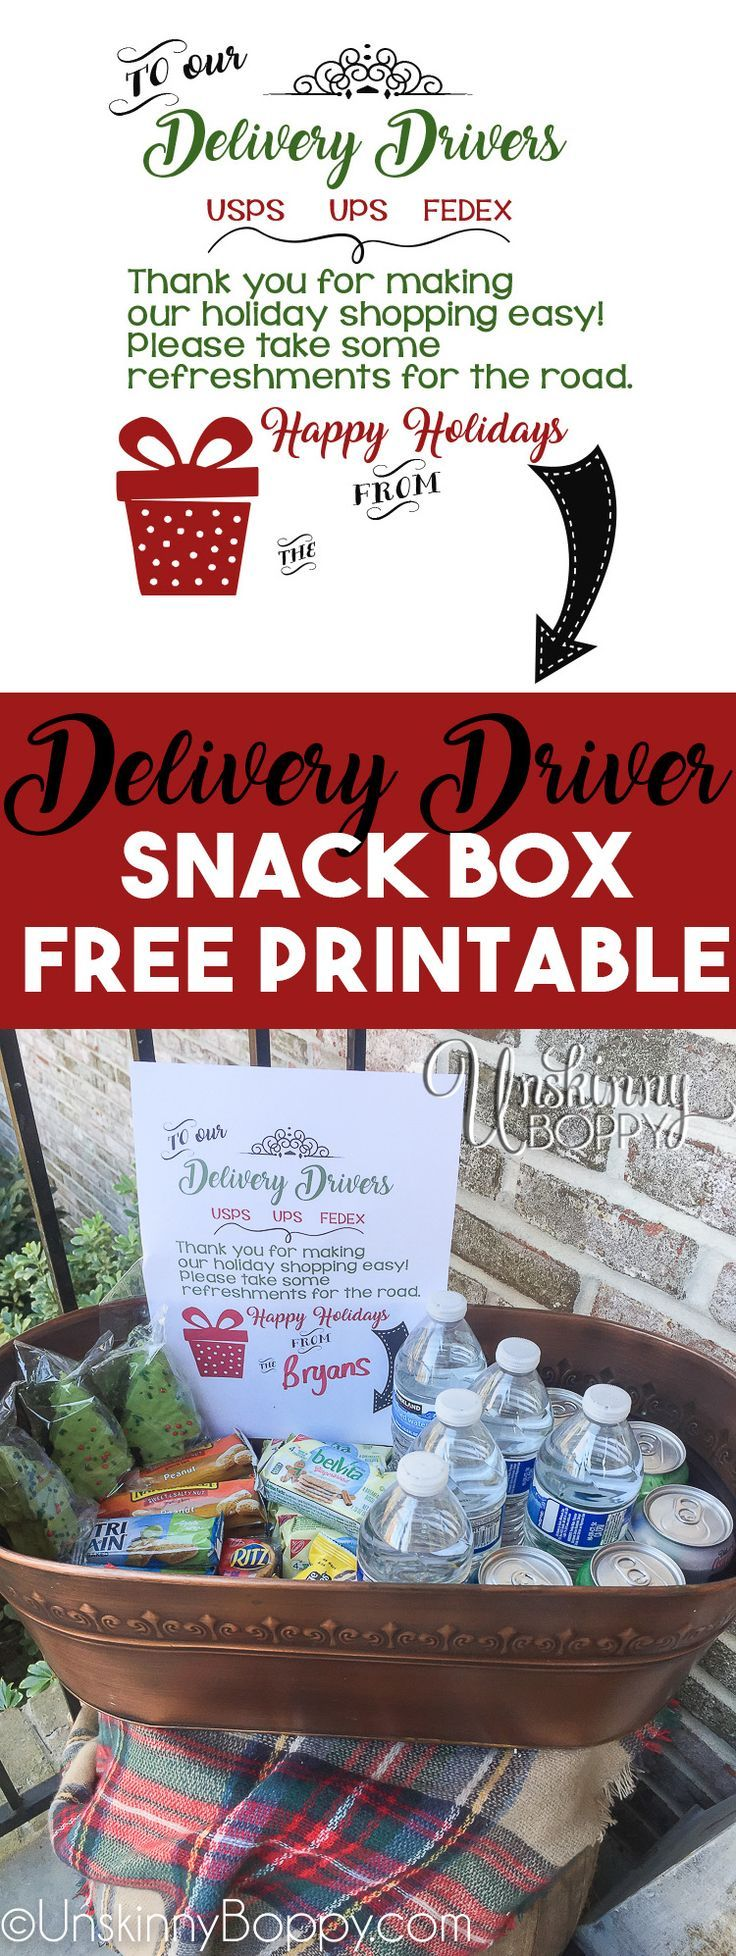 Put a bucket of snacks on your porch for UPS, FedEx and USPS during the holidays. Free Printable sign! #deliveringthanks #ups #fedex #happyholidays #givingback #payitforward #holidaycheer #happyholidays #freeprintable #merrychristmas Delivery Driver Porch Snacks {Free Printable} - Unskinny Boppy